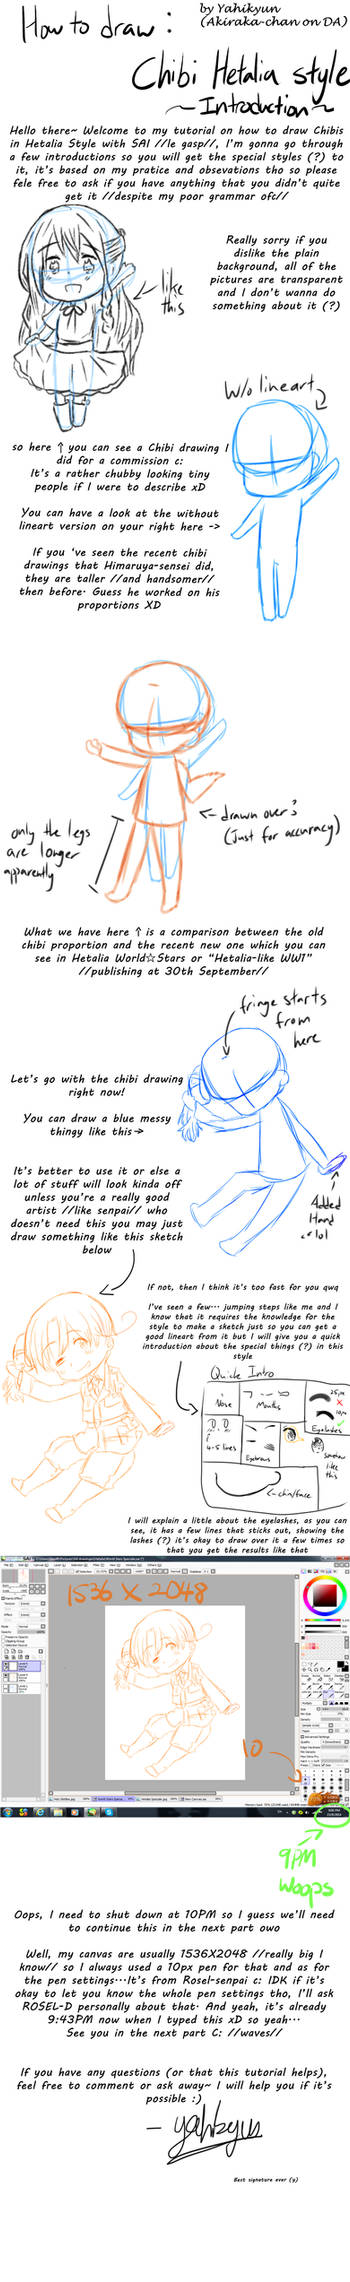 How to draw Chibi Hetalia Style P1:Introduction